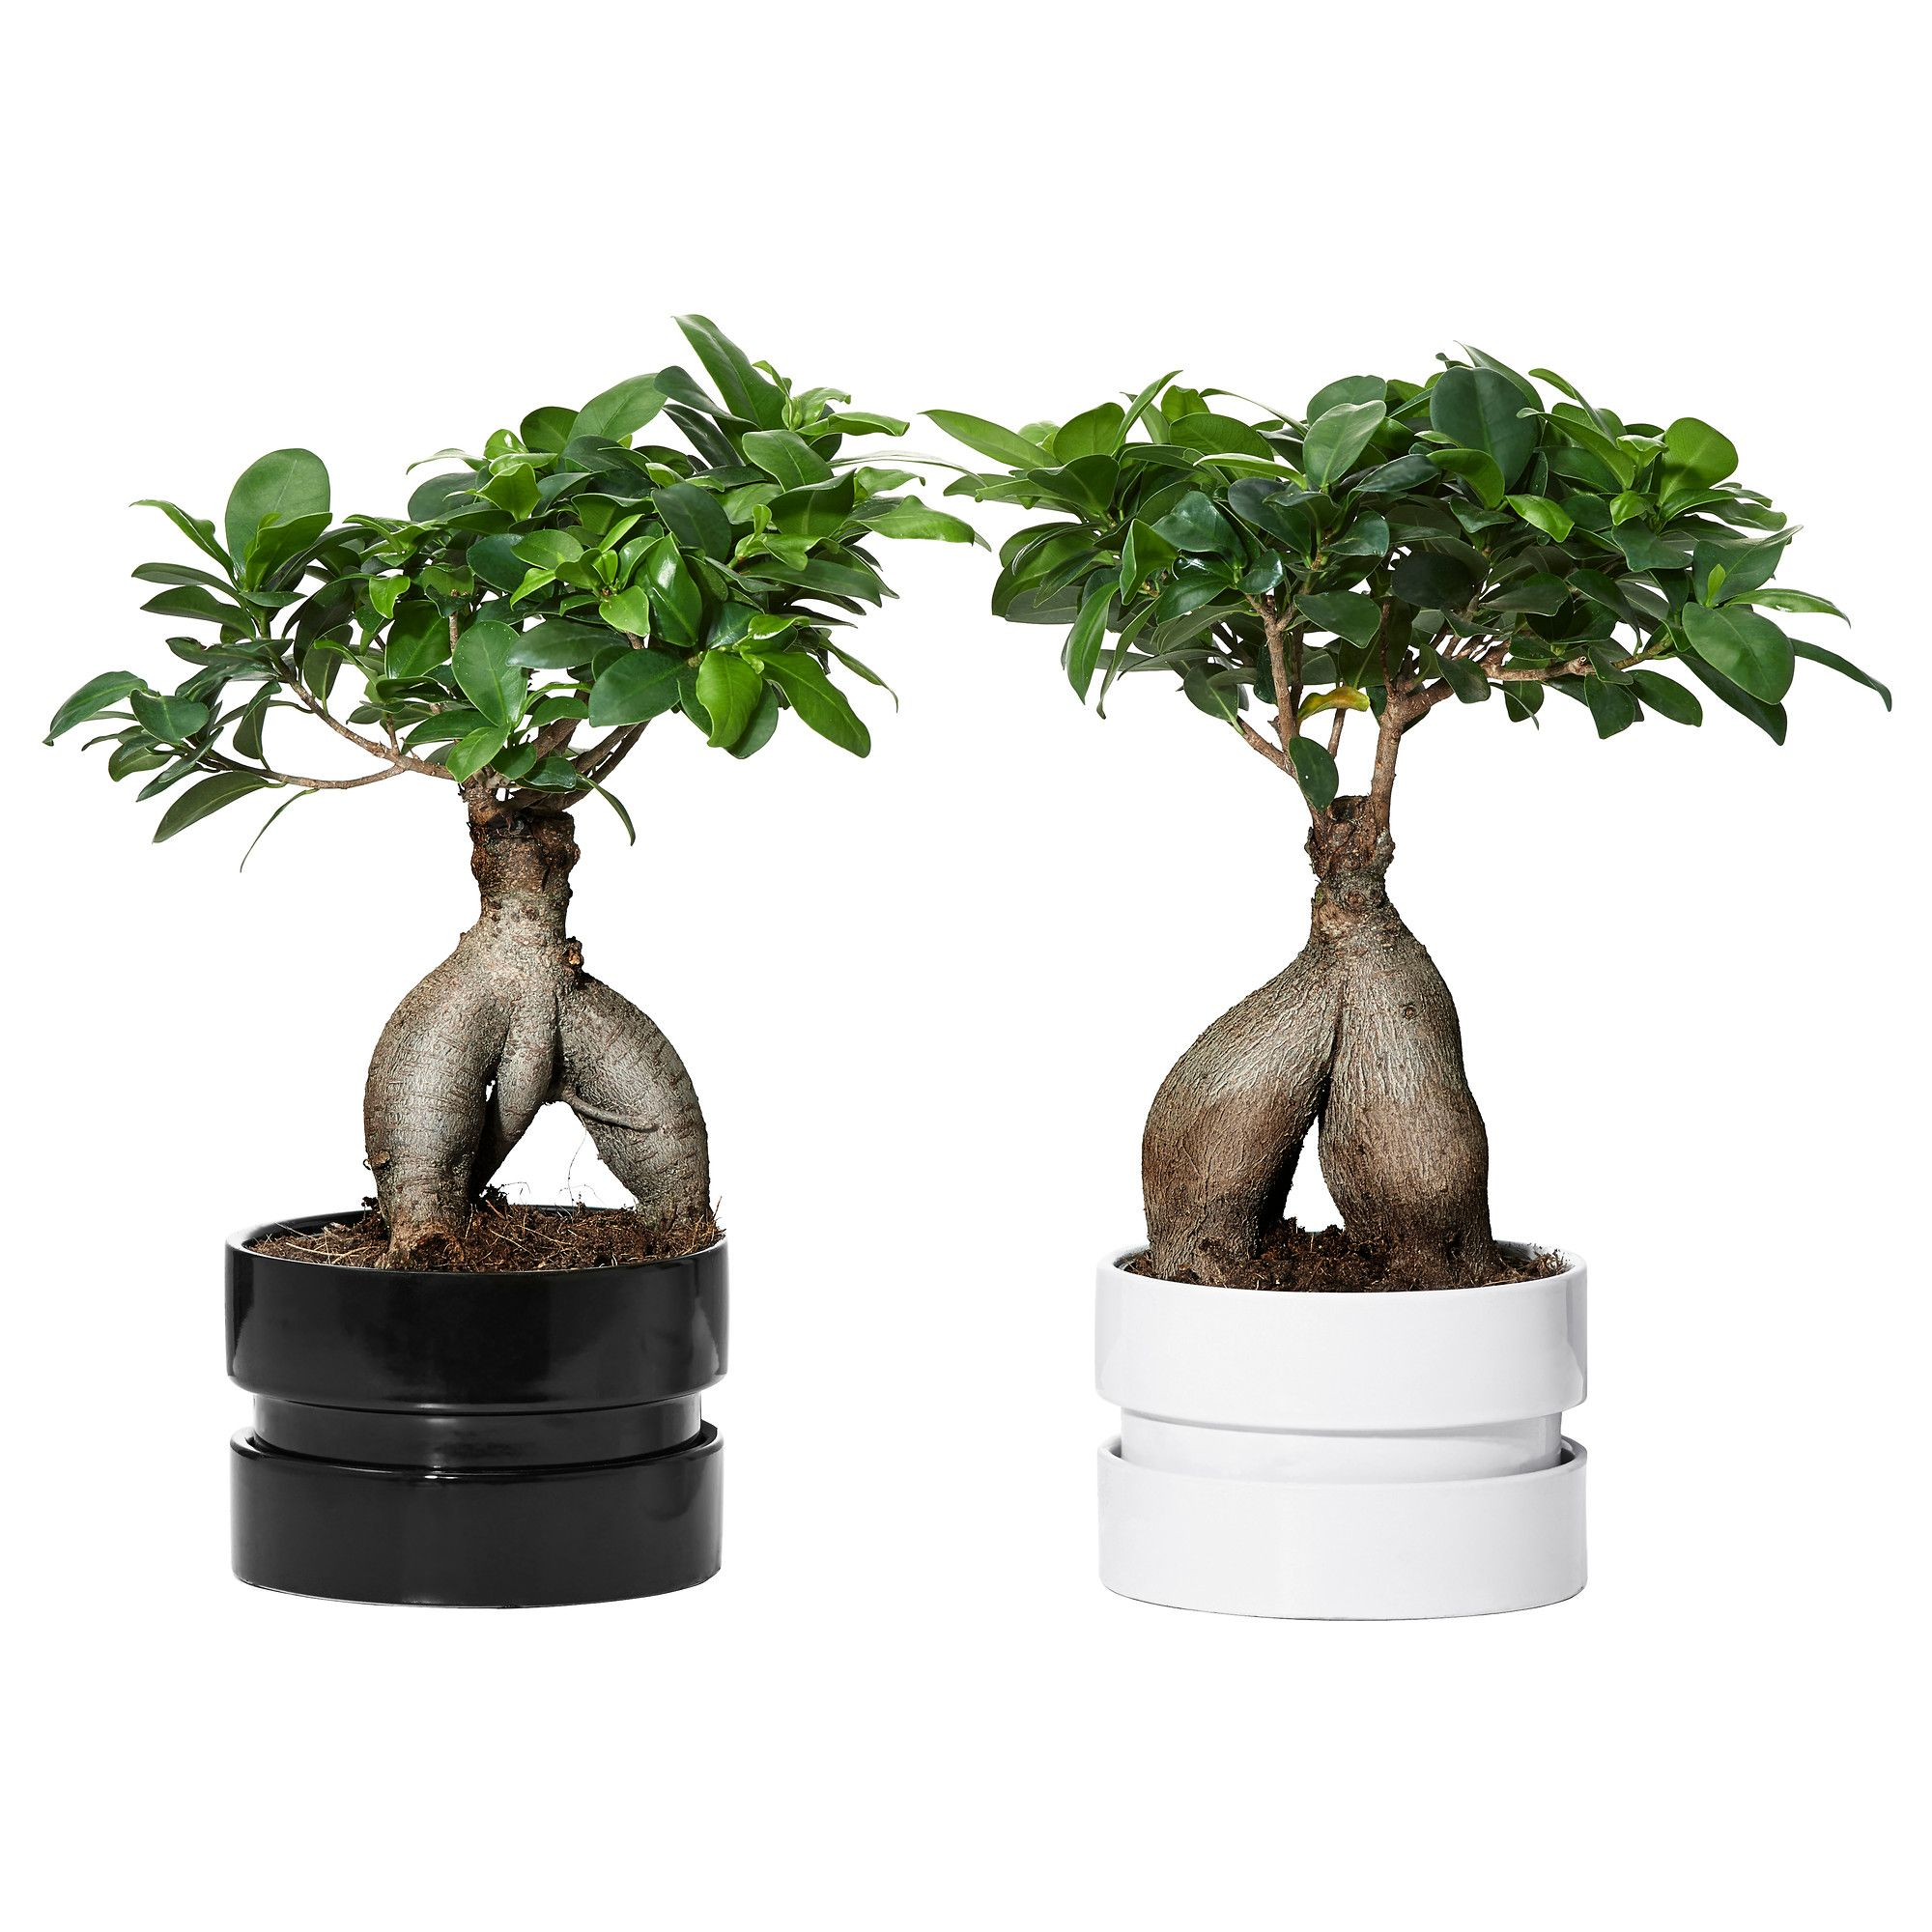 Ginseng Baum Ficus Microcarpa Ginseng Plant With Pot Bonsai Assorted